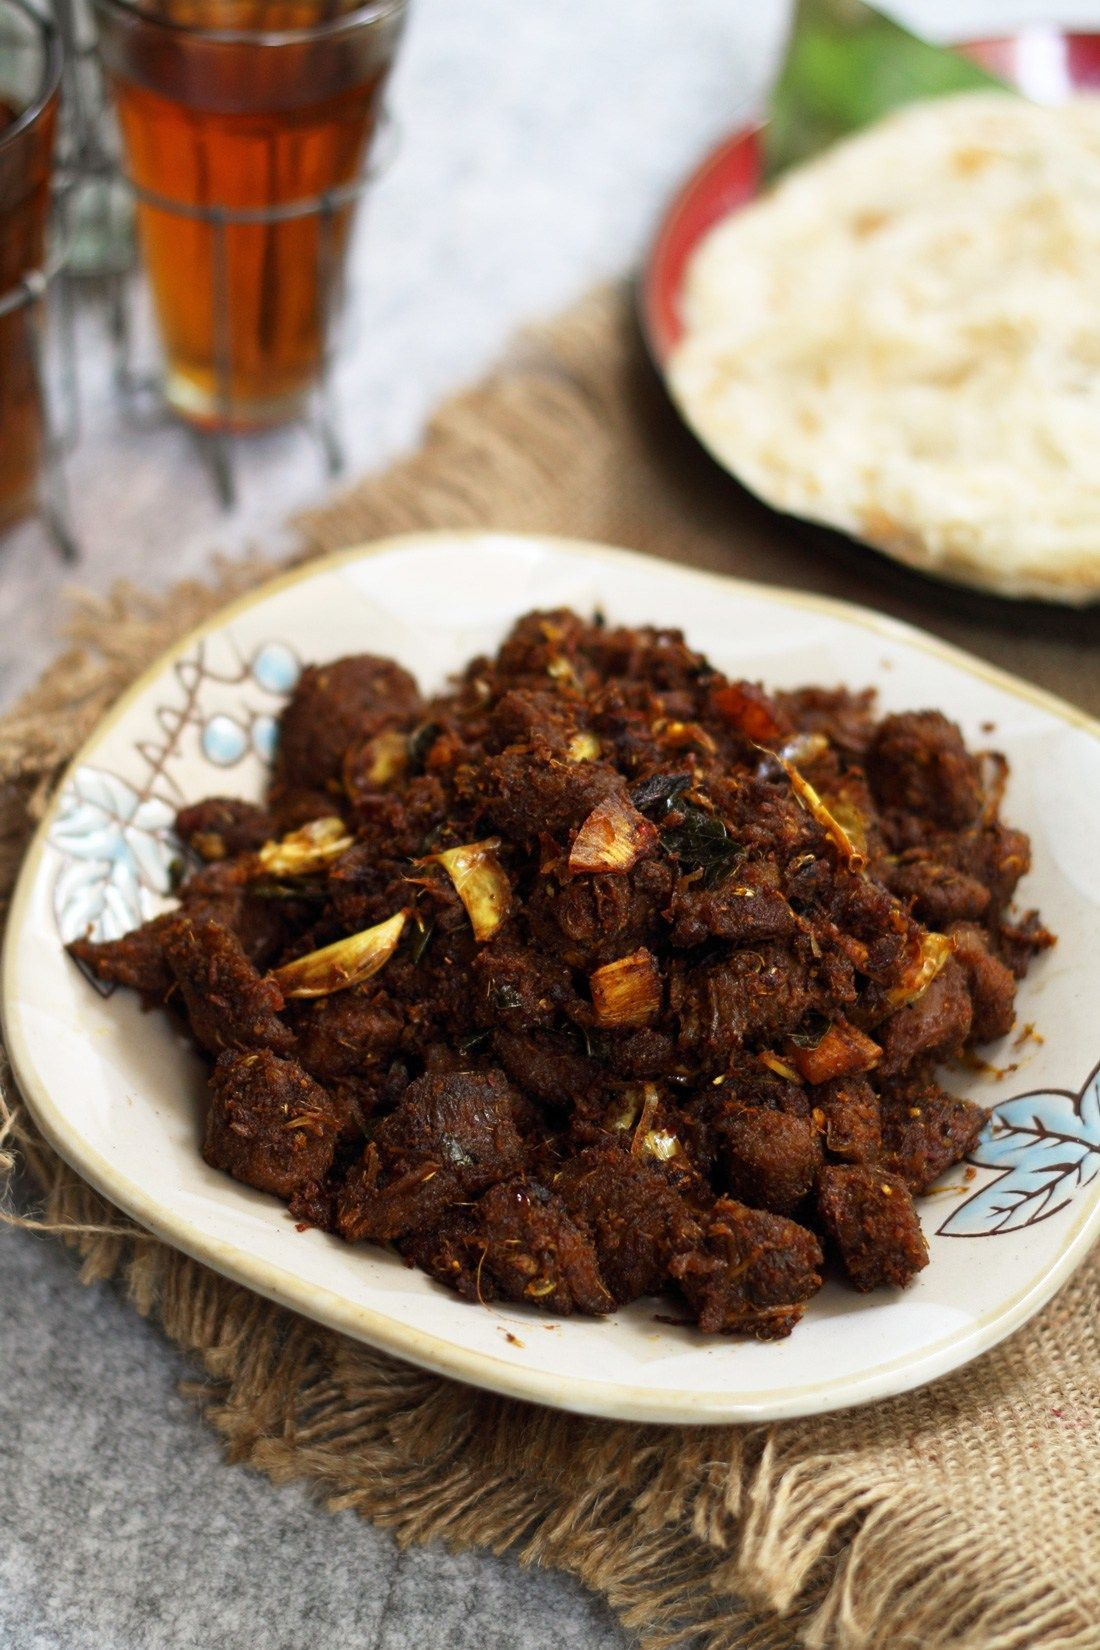 Beef Ularthiyathu Or Kerala Beef Fry Beef Cooked In A Spicy Pepper Based Masala Then Seasoned With Coconut Flakes And Cu Indian Food Recipes Beef Beef Recipes